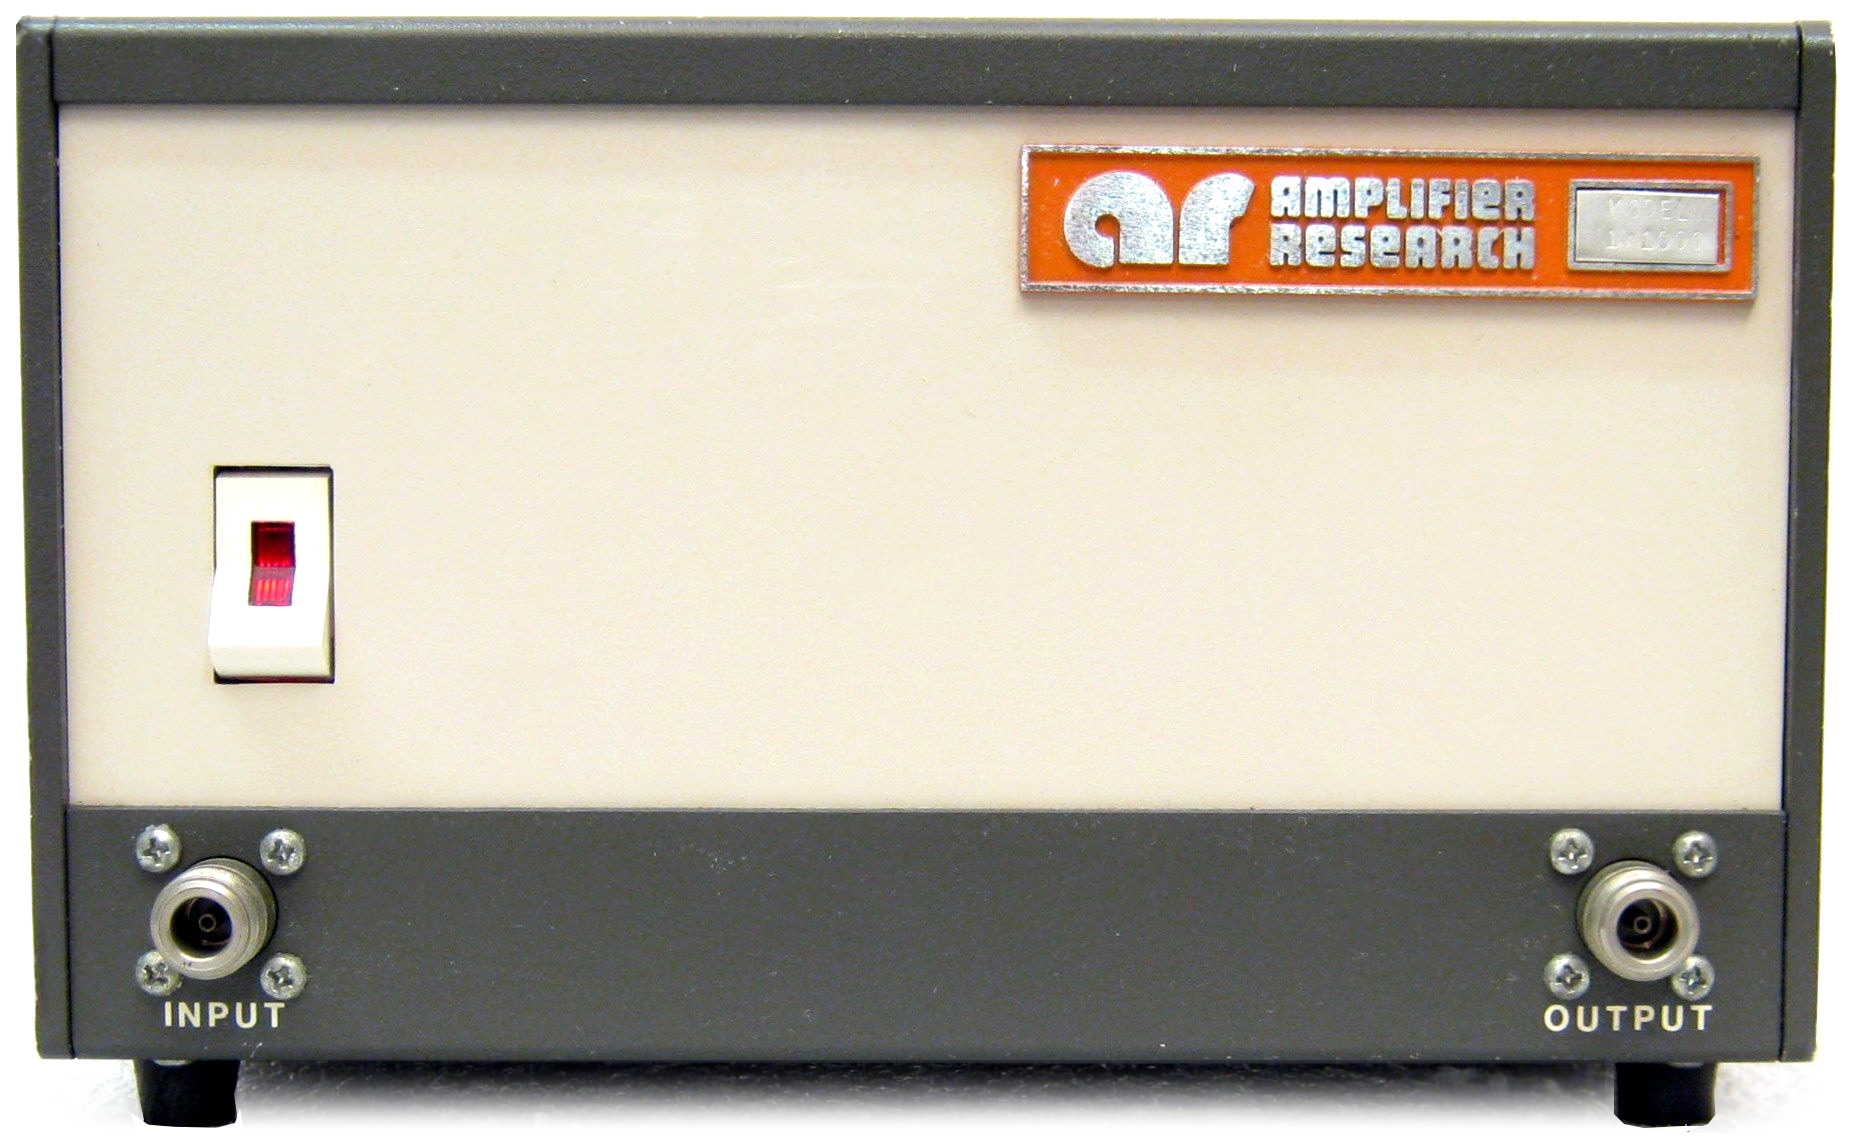 Amplifier Research 1W1000 Broadband RF Amplifier 100 kHz - 1000 MHz